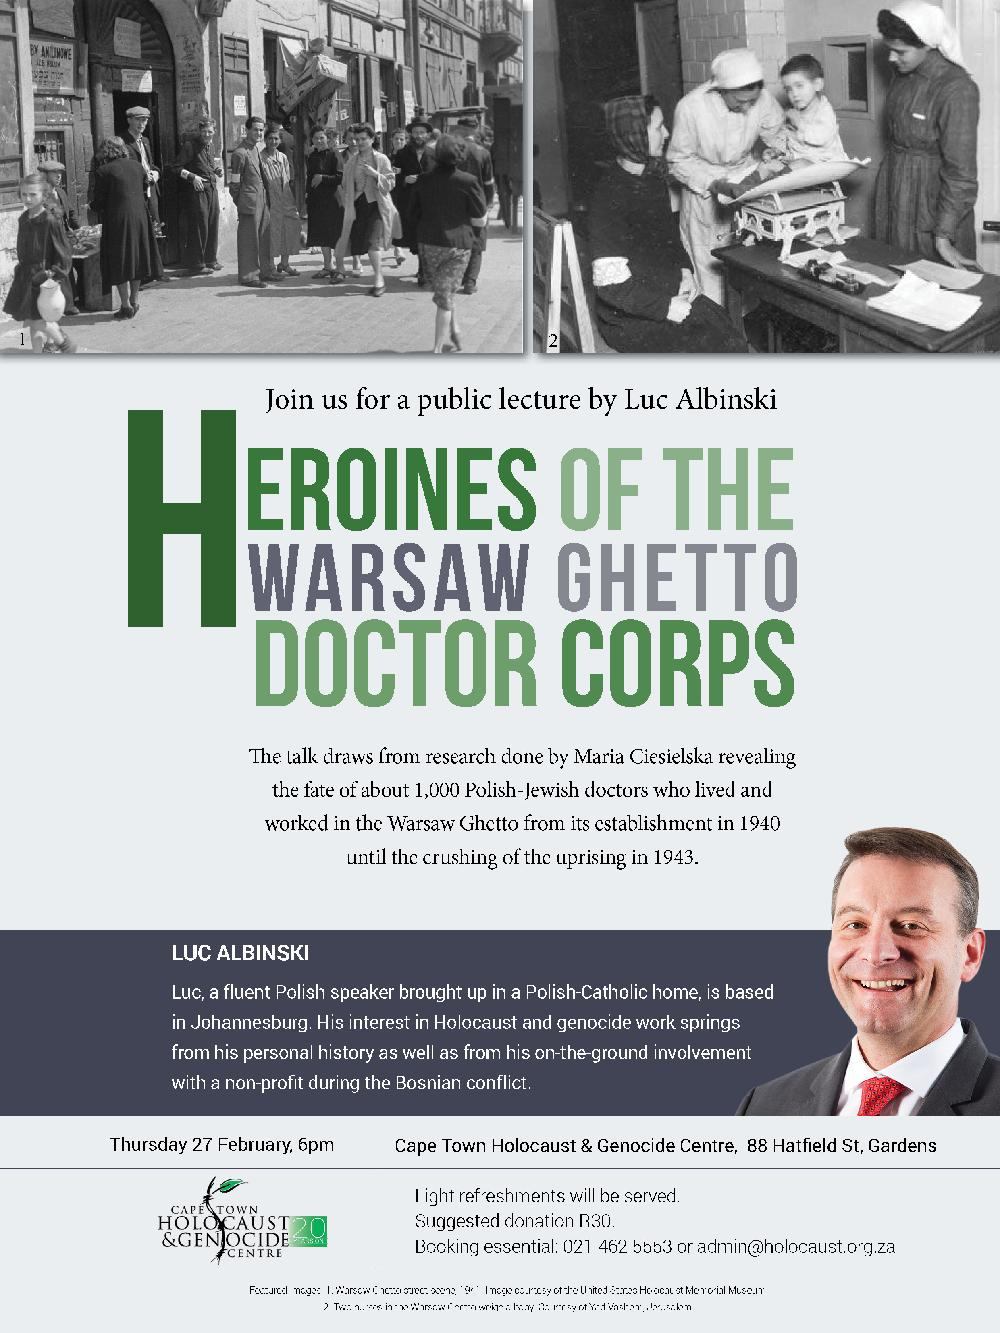 Heroines_of_the_Warsaw_Ghetto_Doctor_Corps_Luc_Albinski_CTHGC